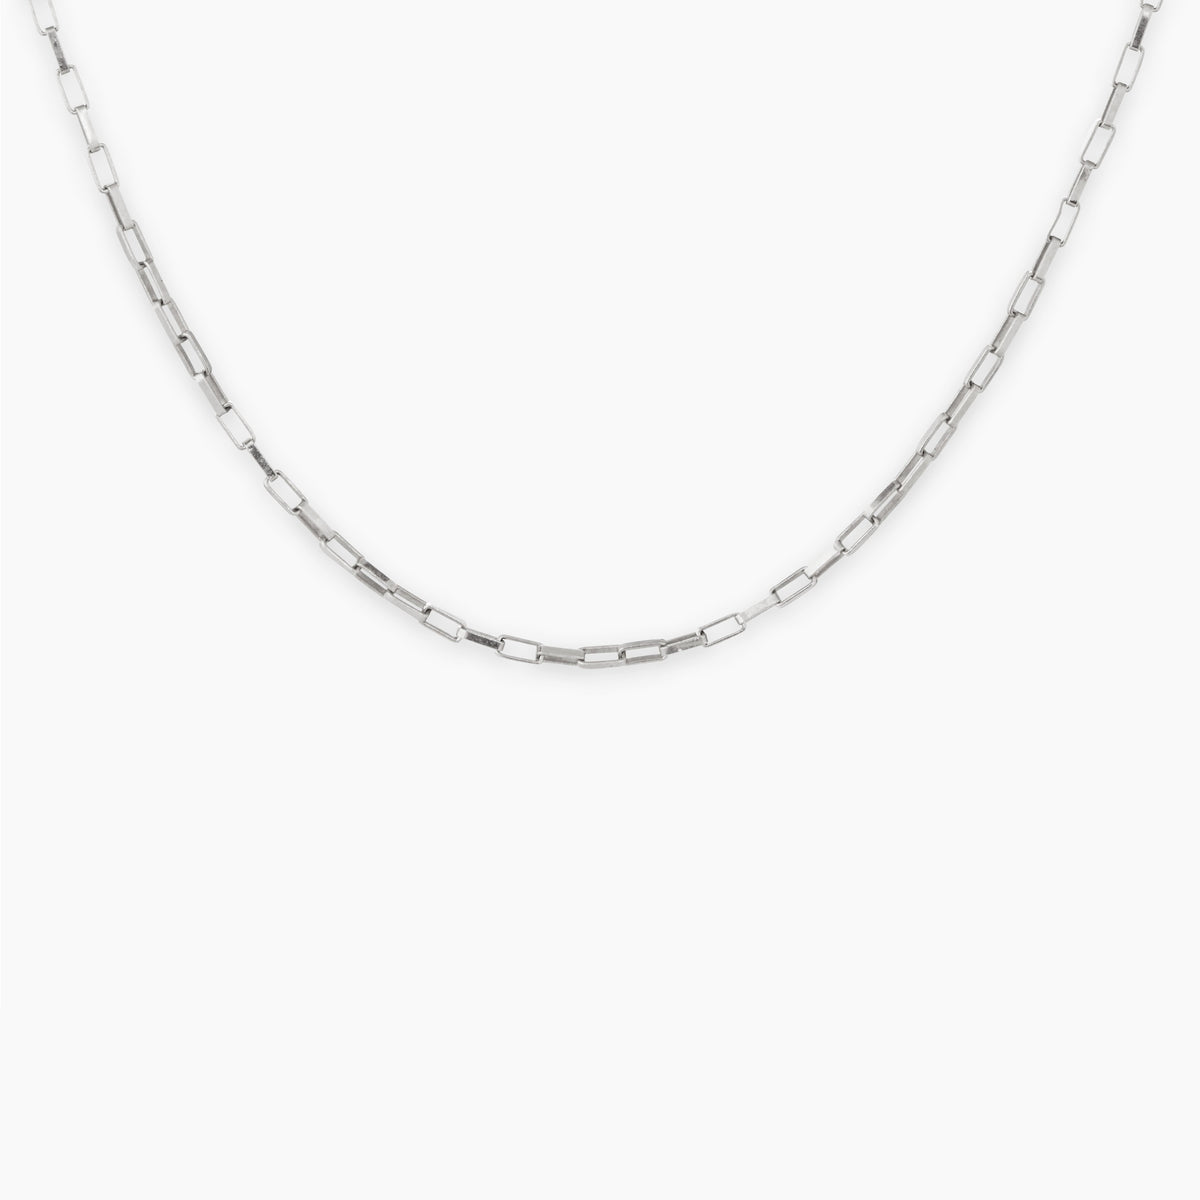 Silver Electric Chain